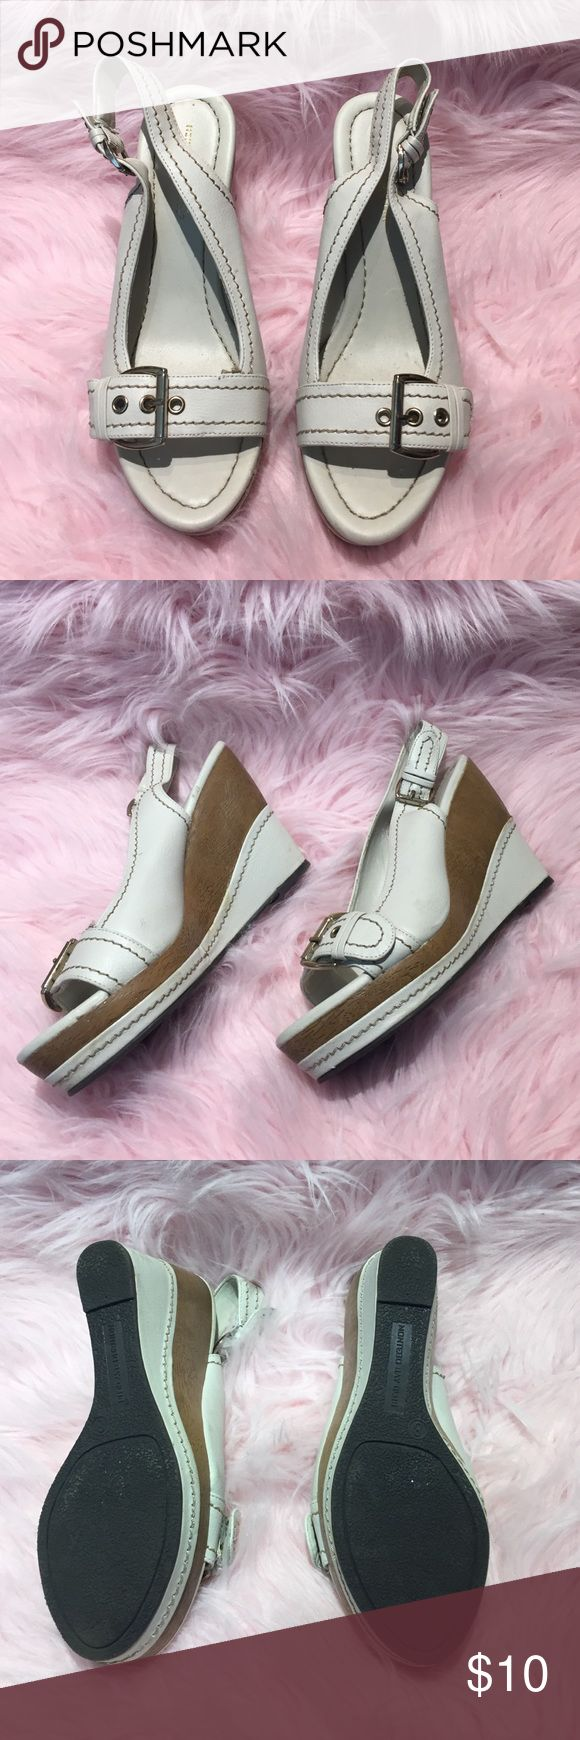 😍 Ladies wedge sandals 😍 Ladies wedge sandals. In fair condition. See pics for details. Priced low to sell!! Off-white / cream color , brown / tan wedge heels . Size 8 Montego Bay Shoes Wedges